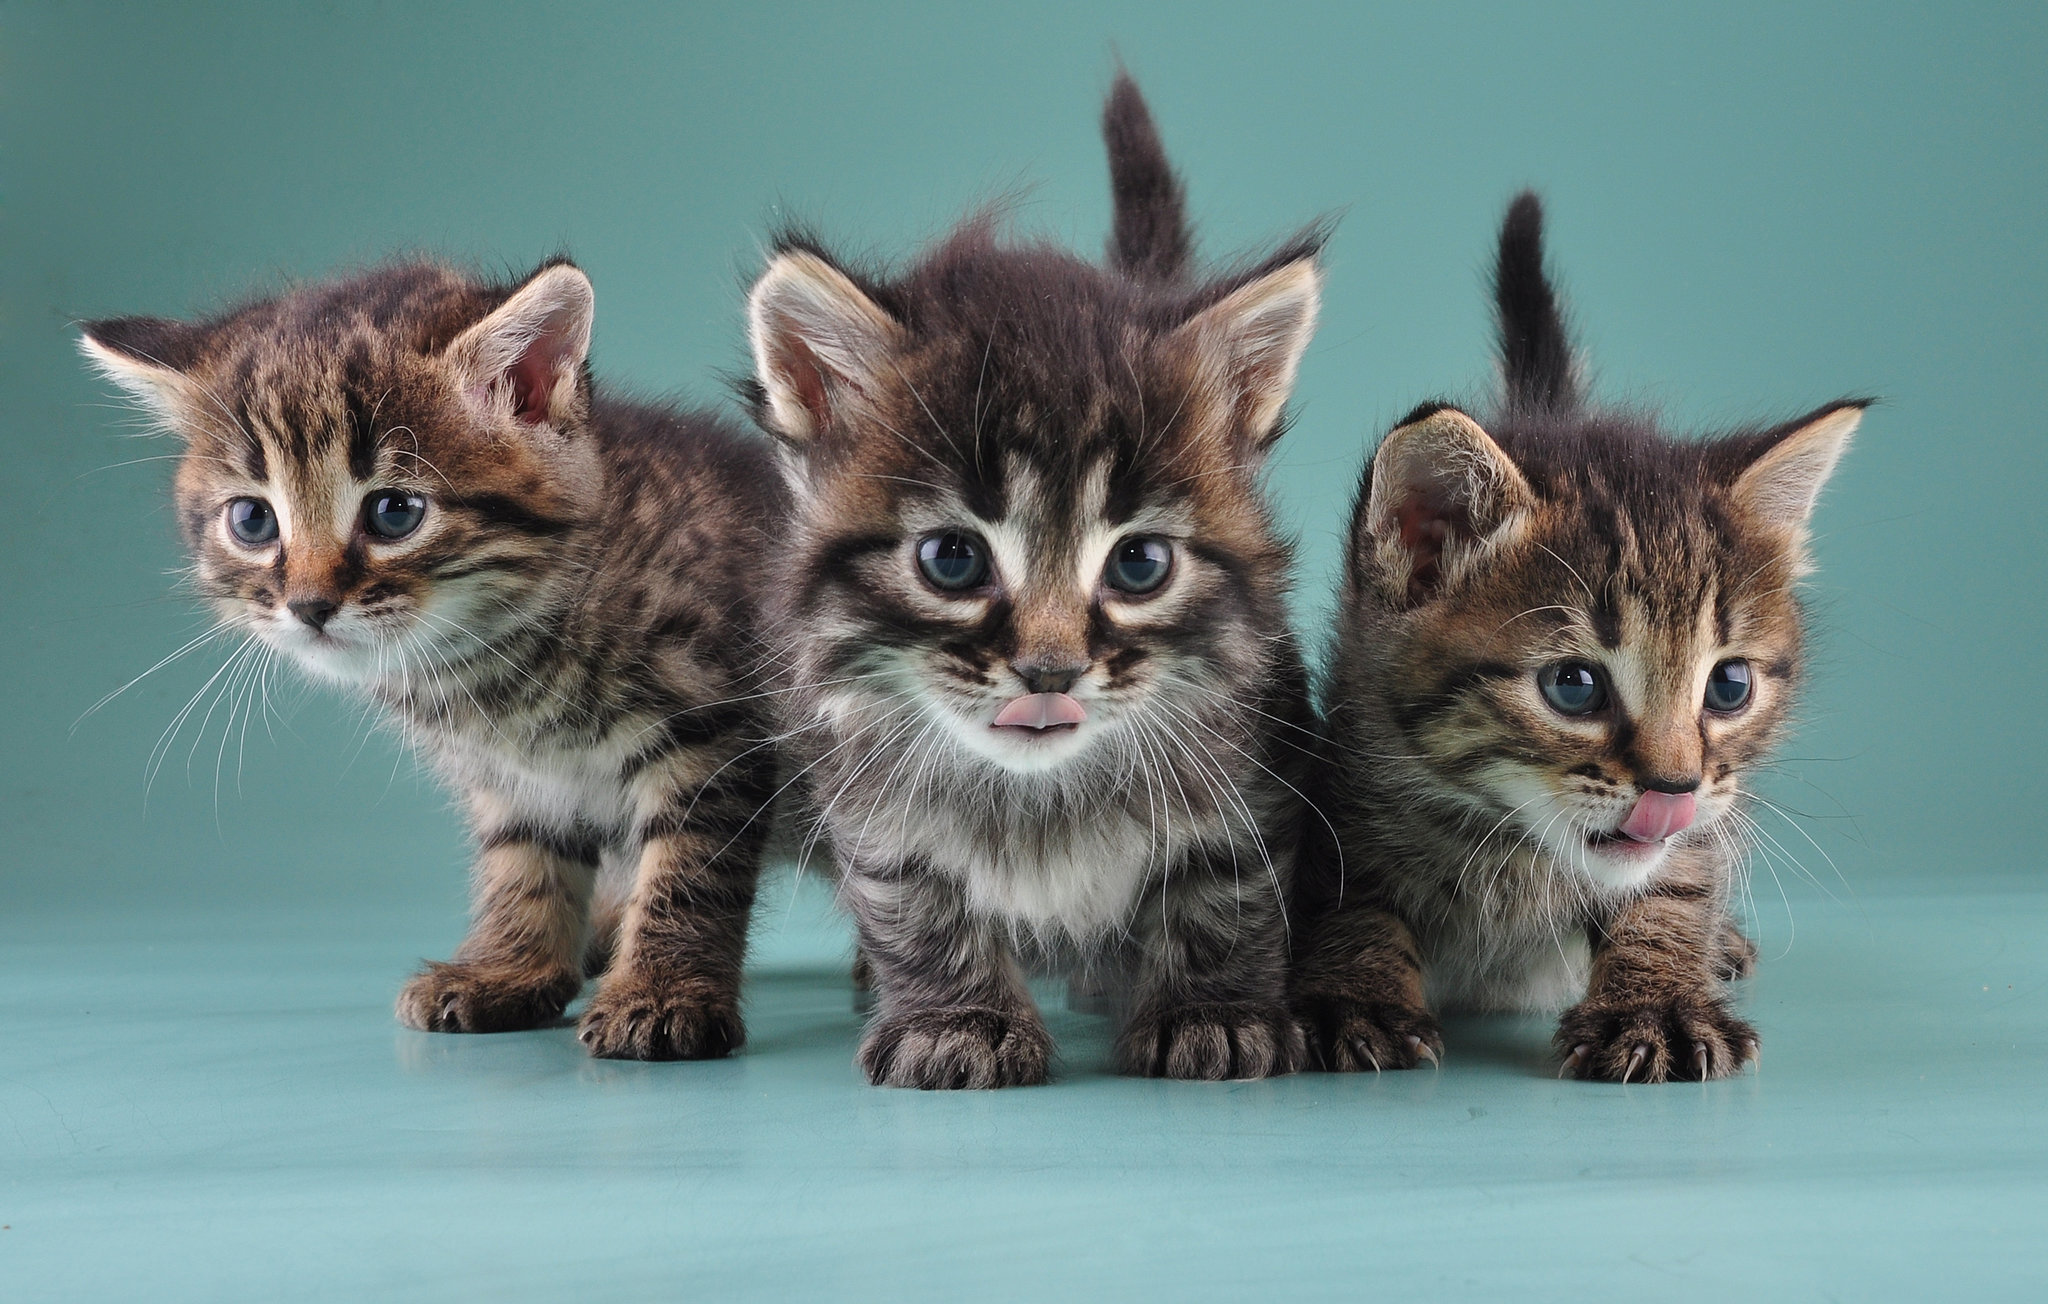 metronidazole 50 mg for cats